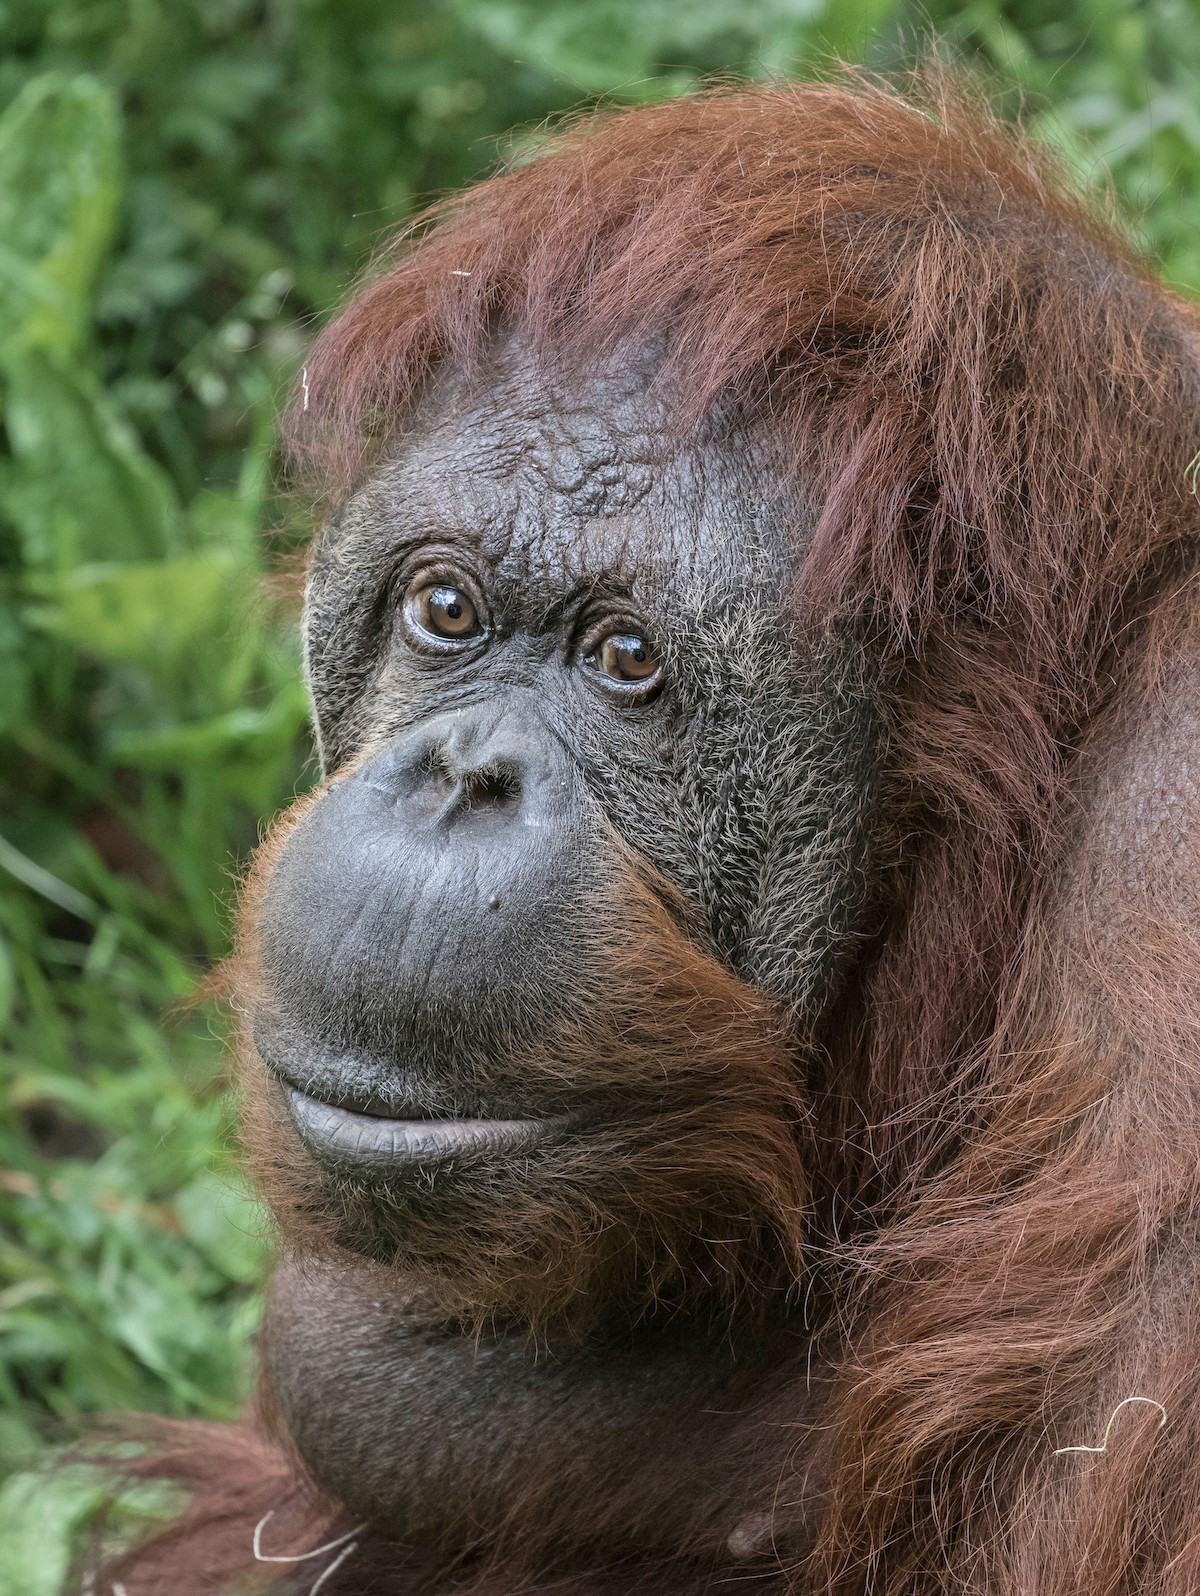 Chinta, female orangutan and oldest animal at Seattle's Woodland Park Zoo, died Tuesday at 51